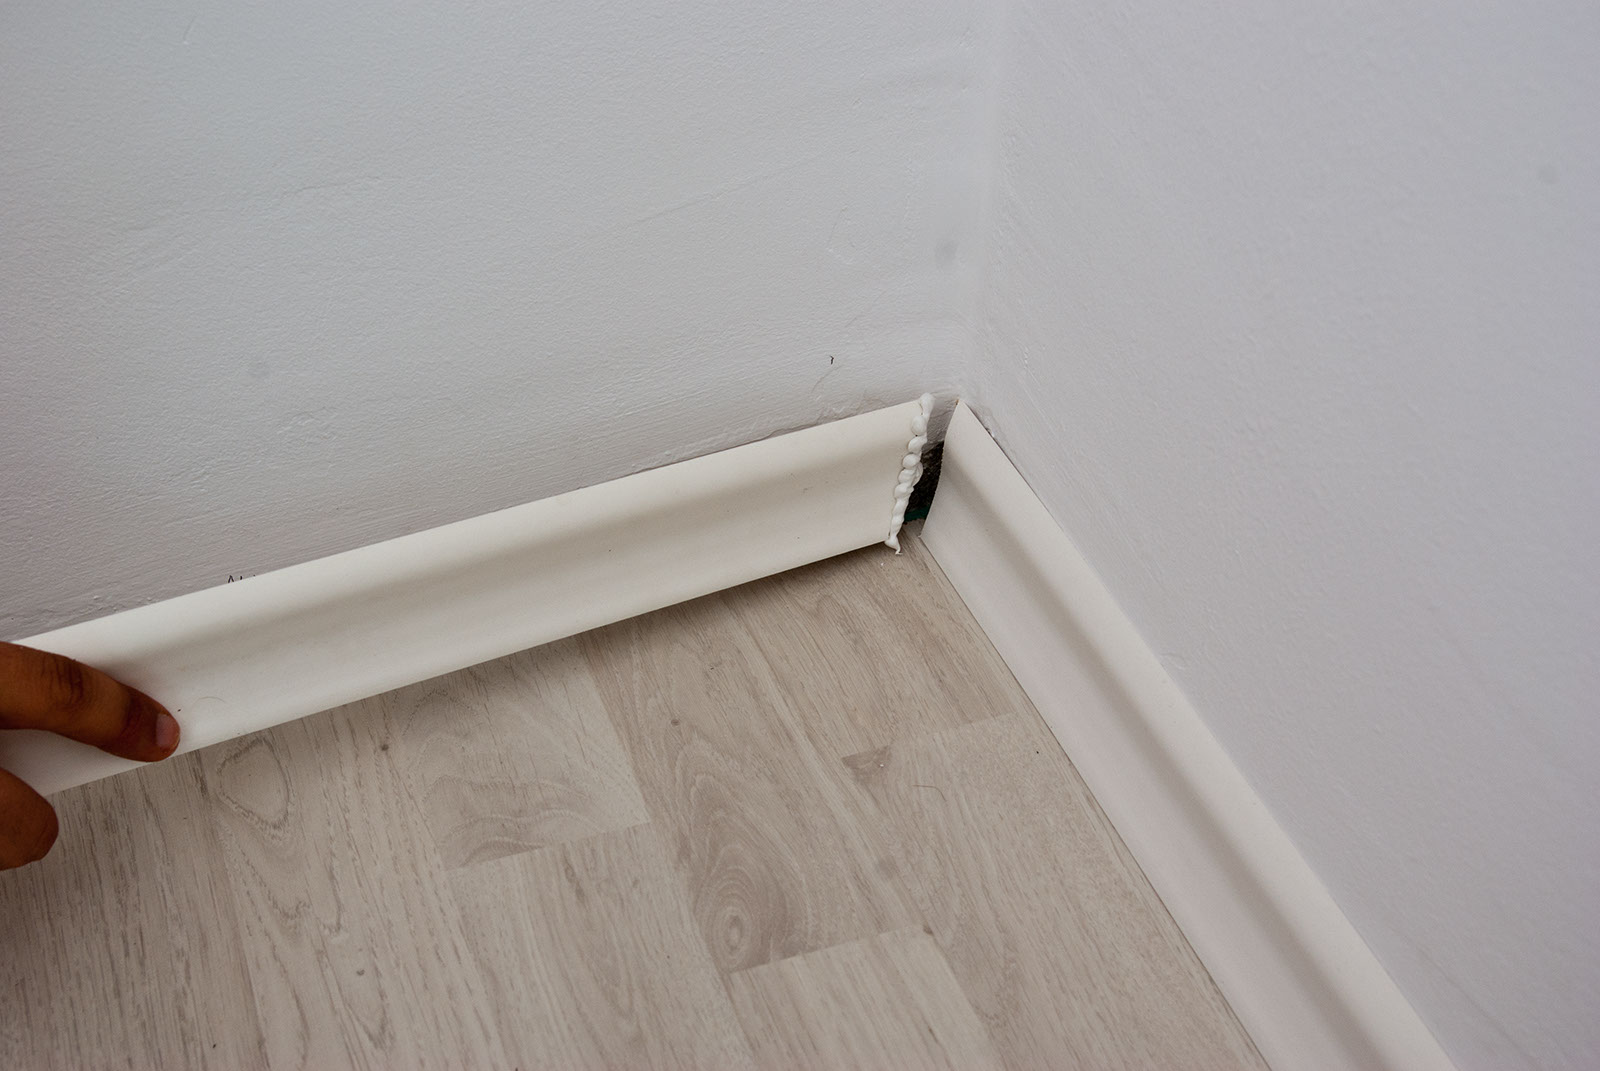 How To Install Baseboard Trim Howtospecialist How To